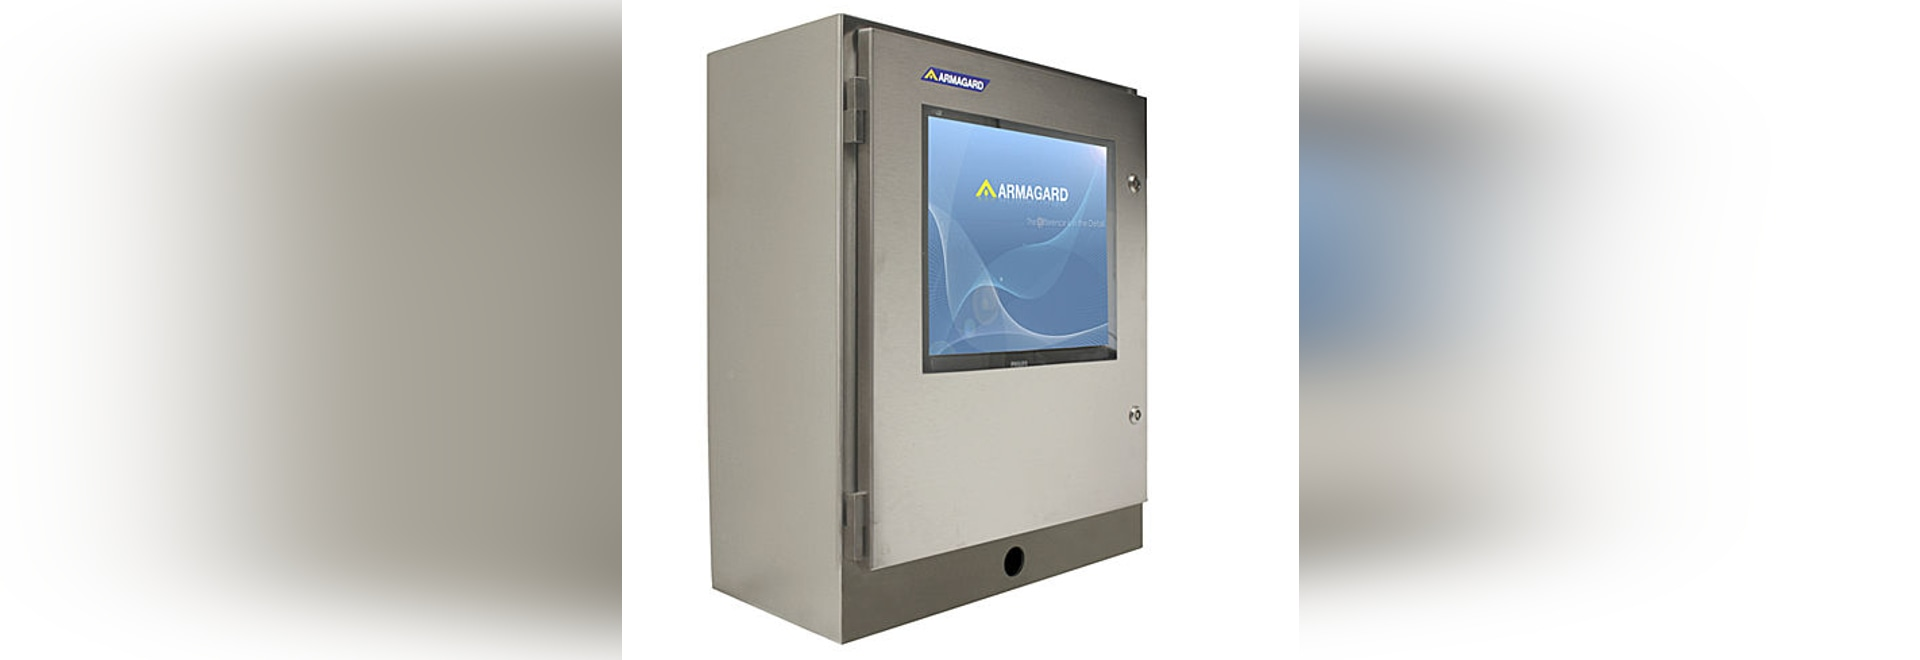 Protect your profits with the Waterproof Computer Enclosure